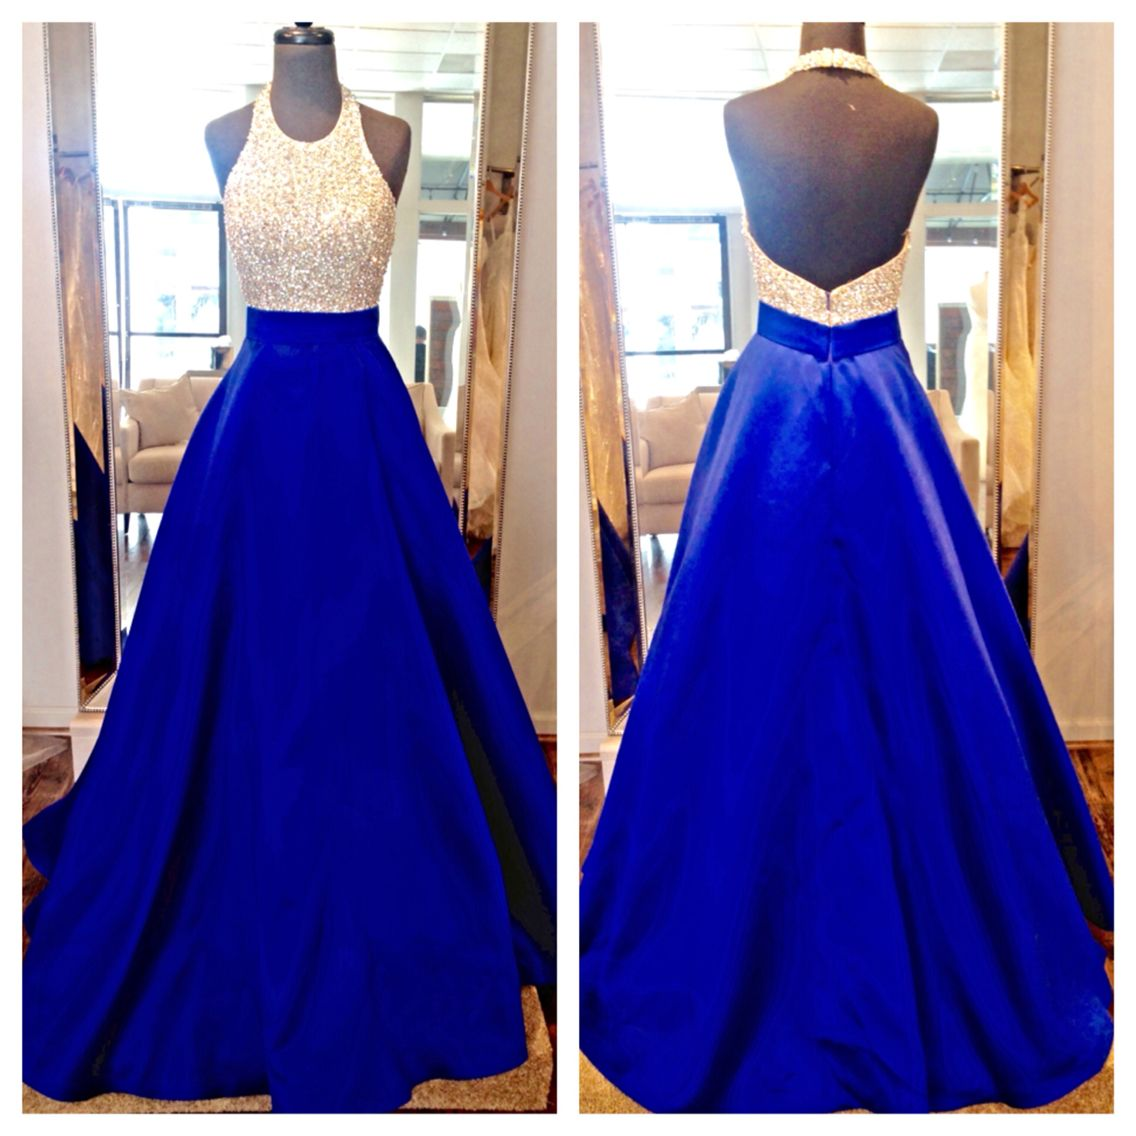 Let us help you find your dream dress. Jovani 29160 in Royal. What ...